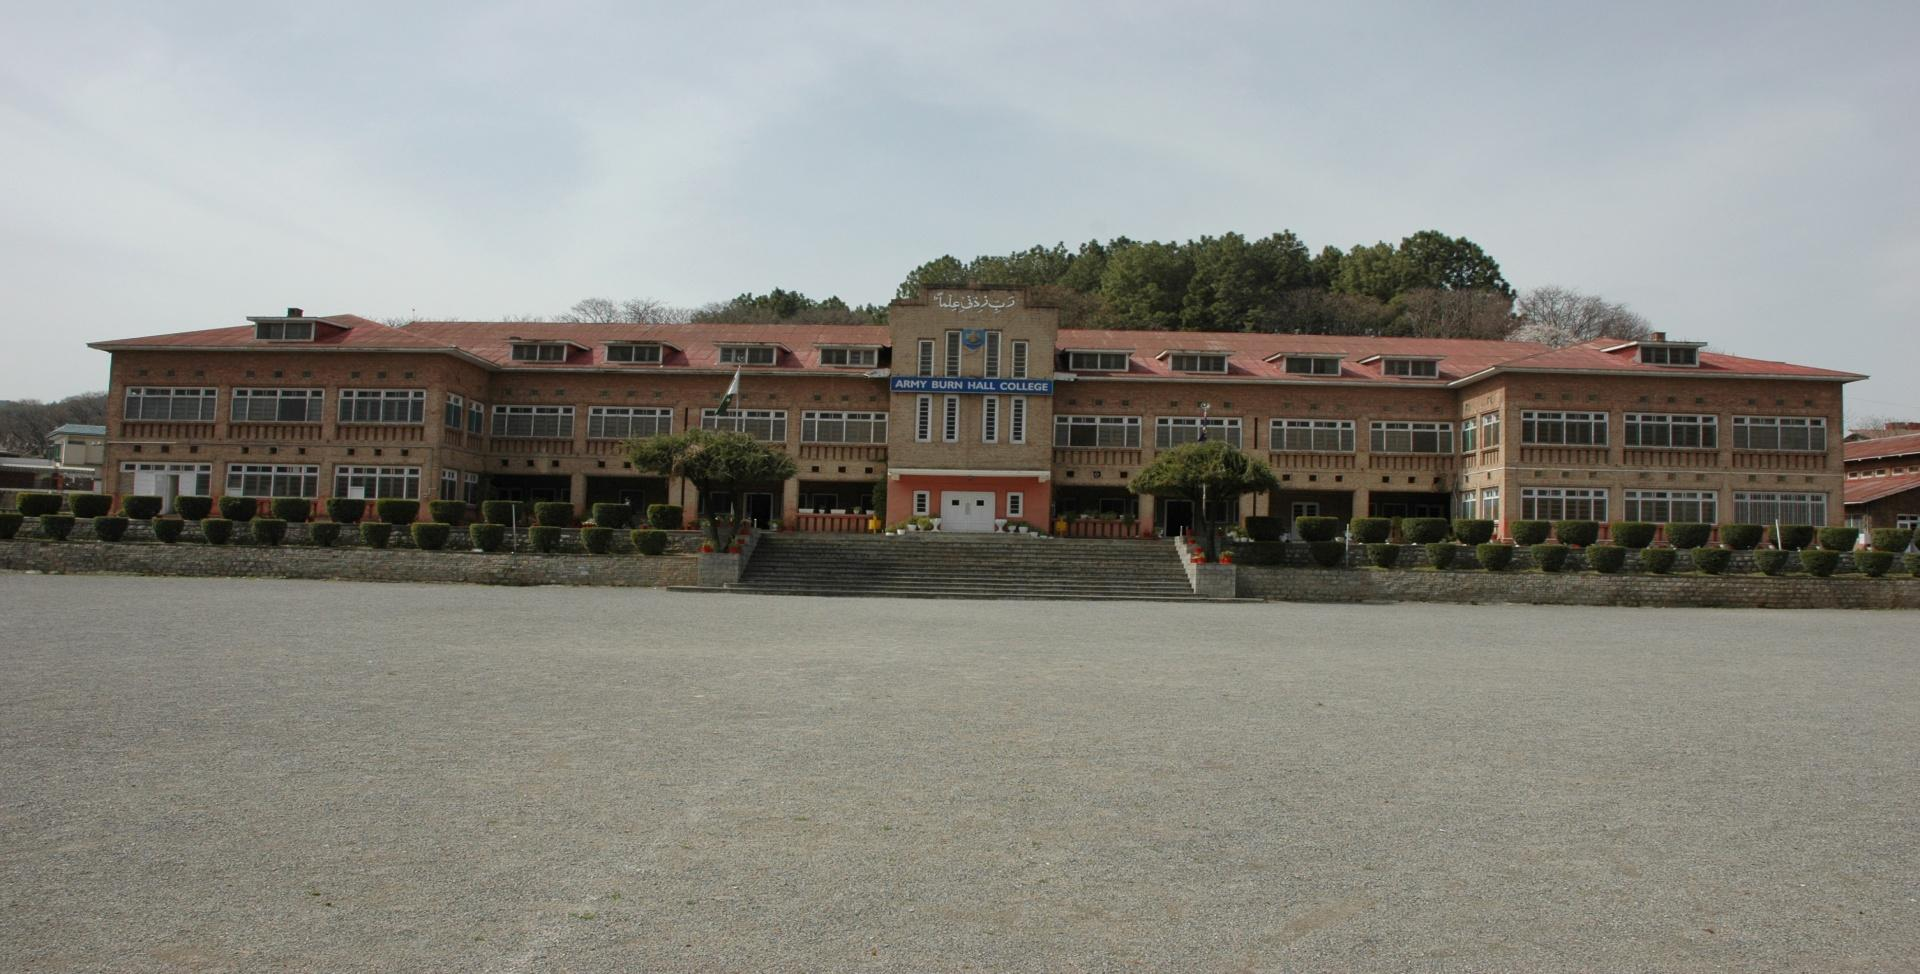 The Colbert Report - Series Comedy Central Official Army burn hall college abbottabad pictures